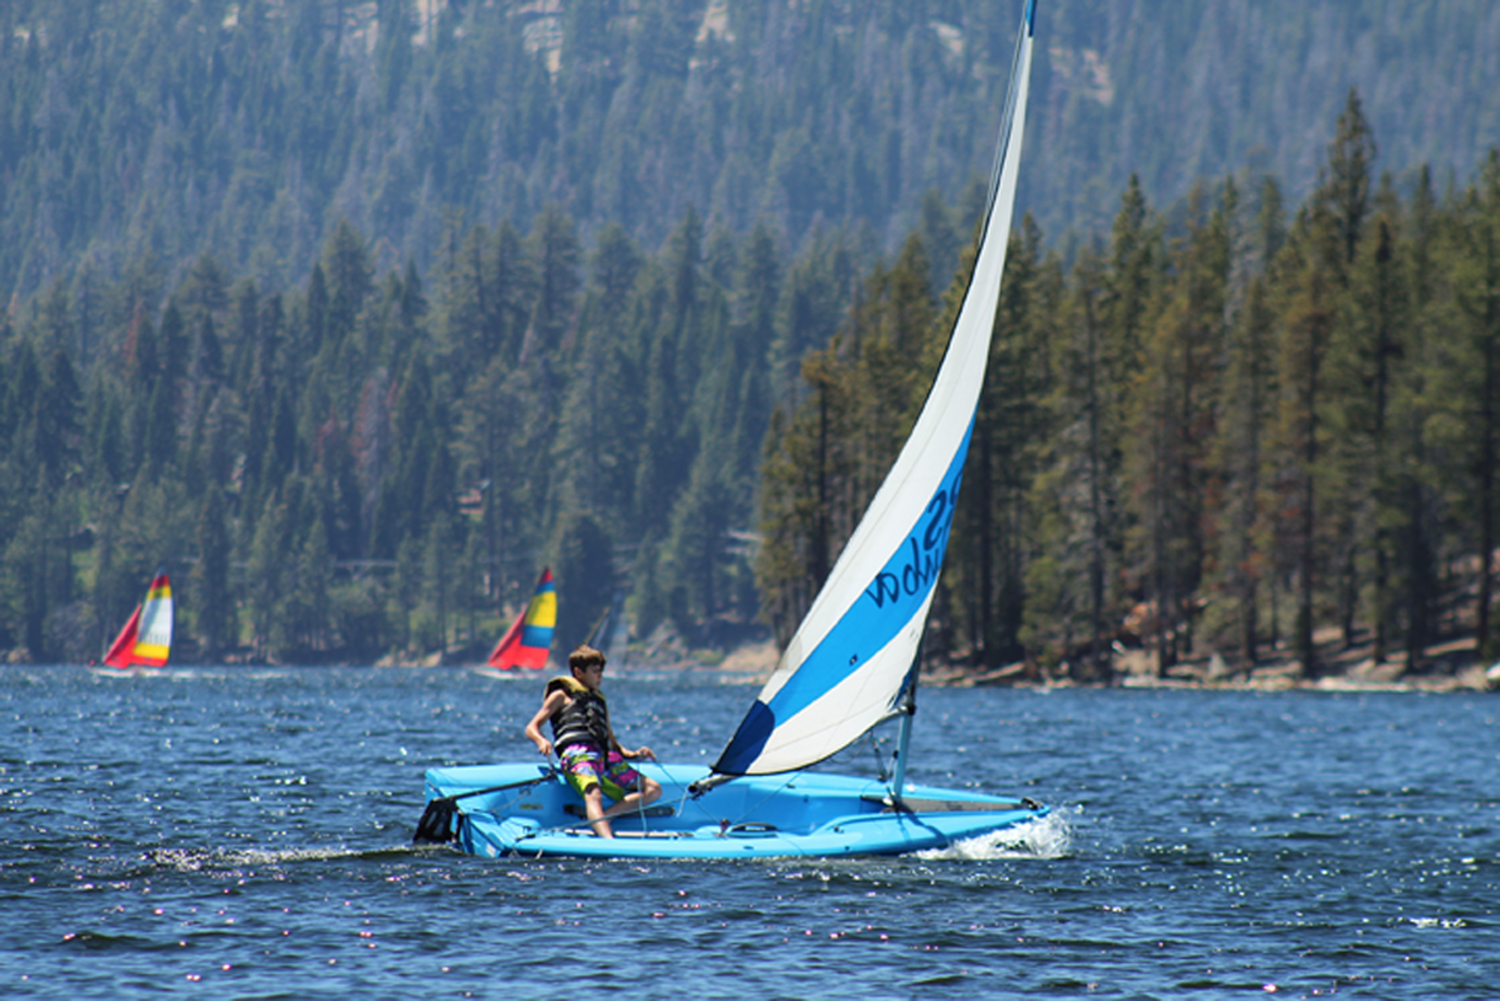 A camper sails an RS Q'ba on Huntington Lake California at Gold Arrow Camp